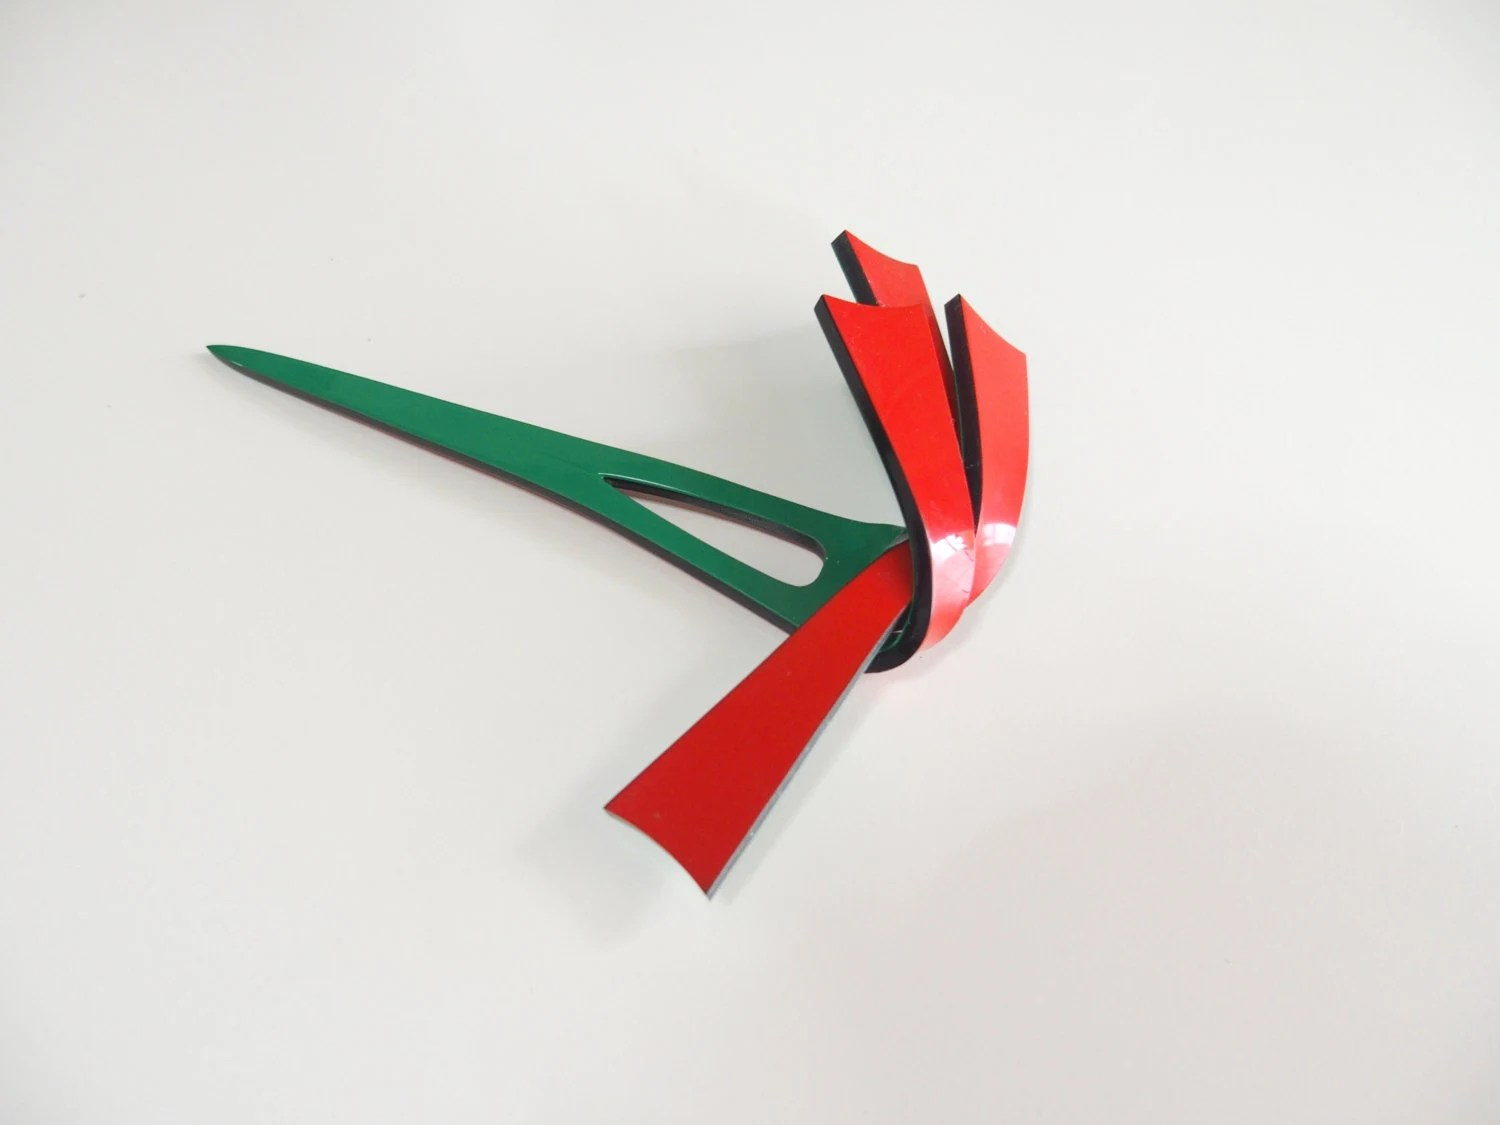 Unique Kanzashi Japanese Hair Accessory Red Green 十六 311